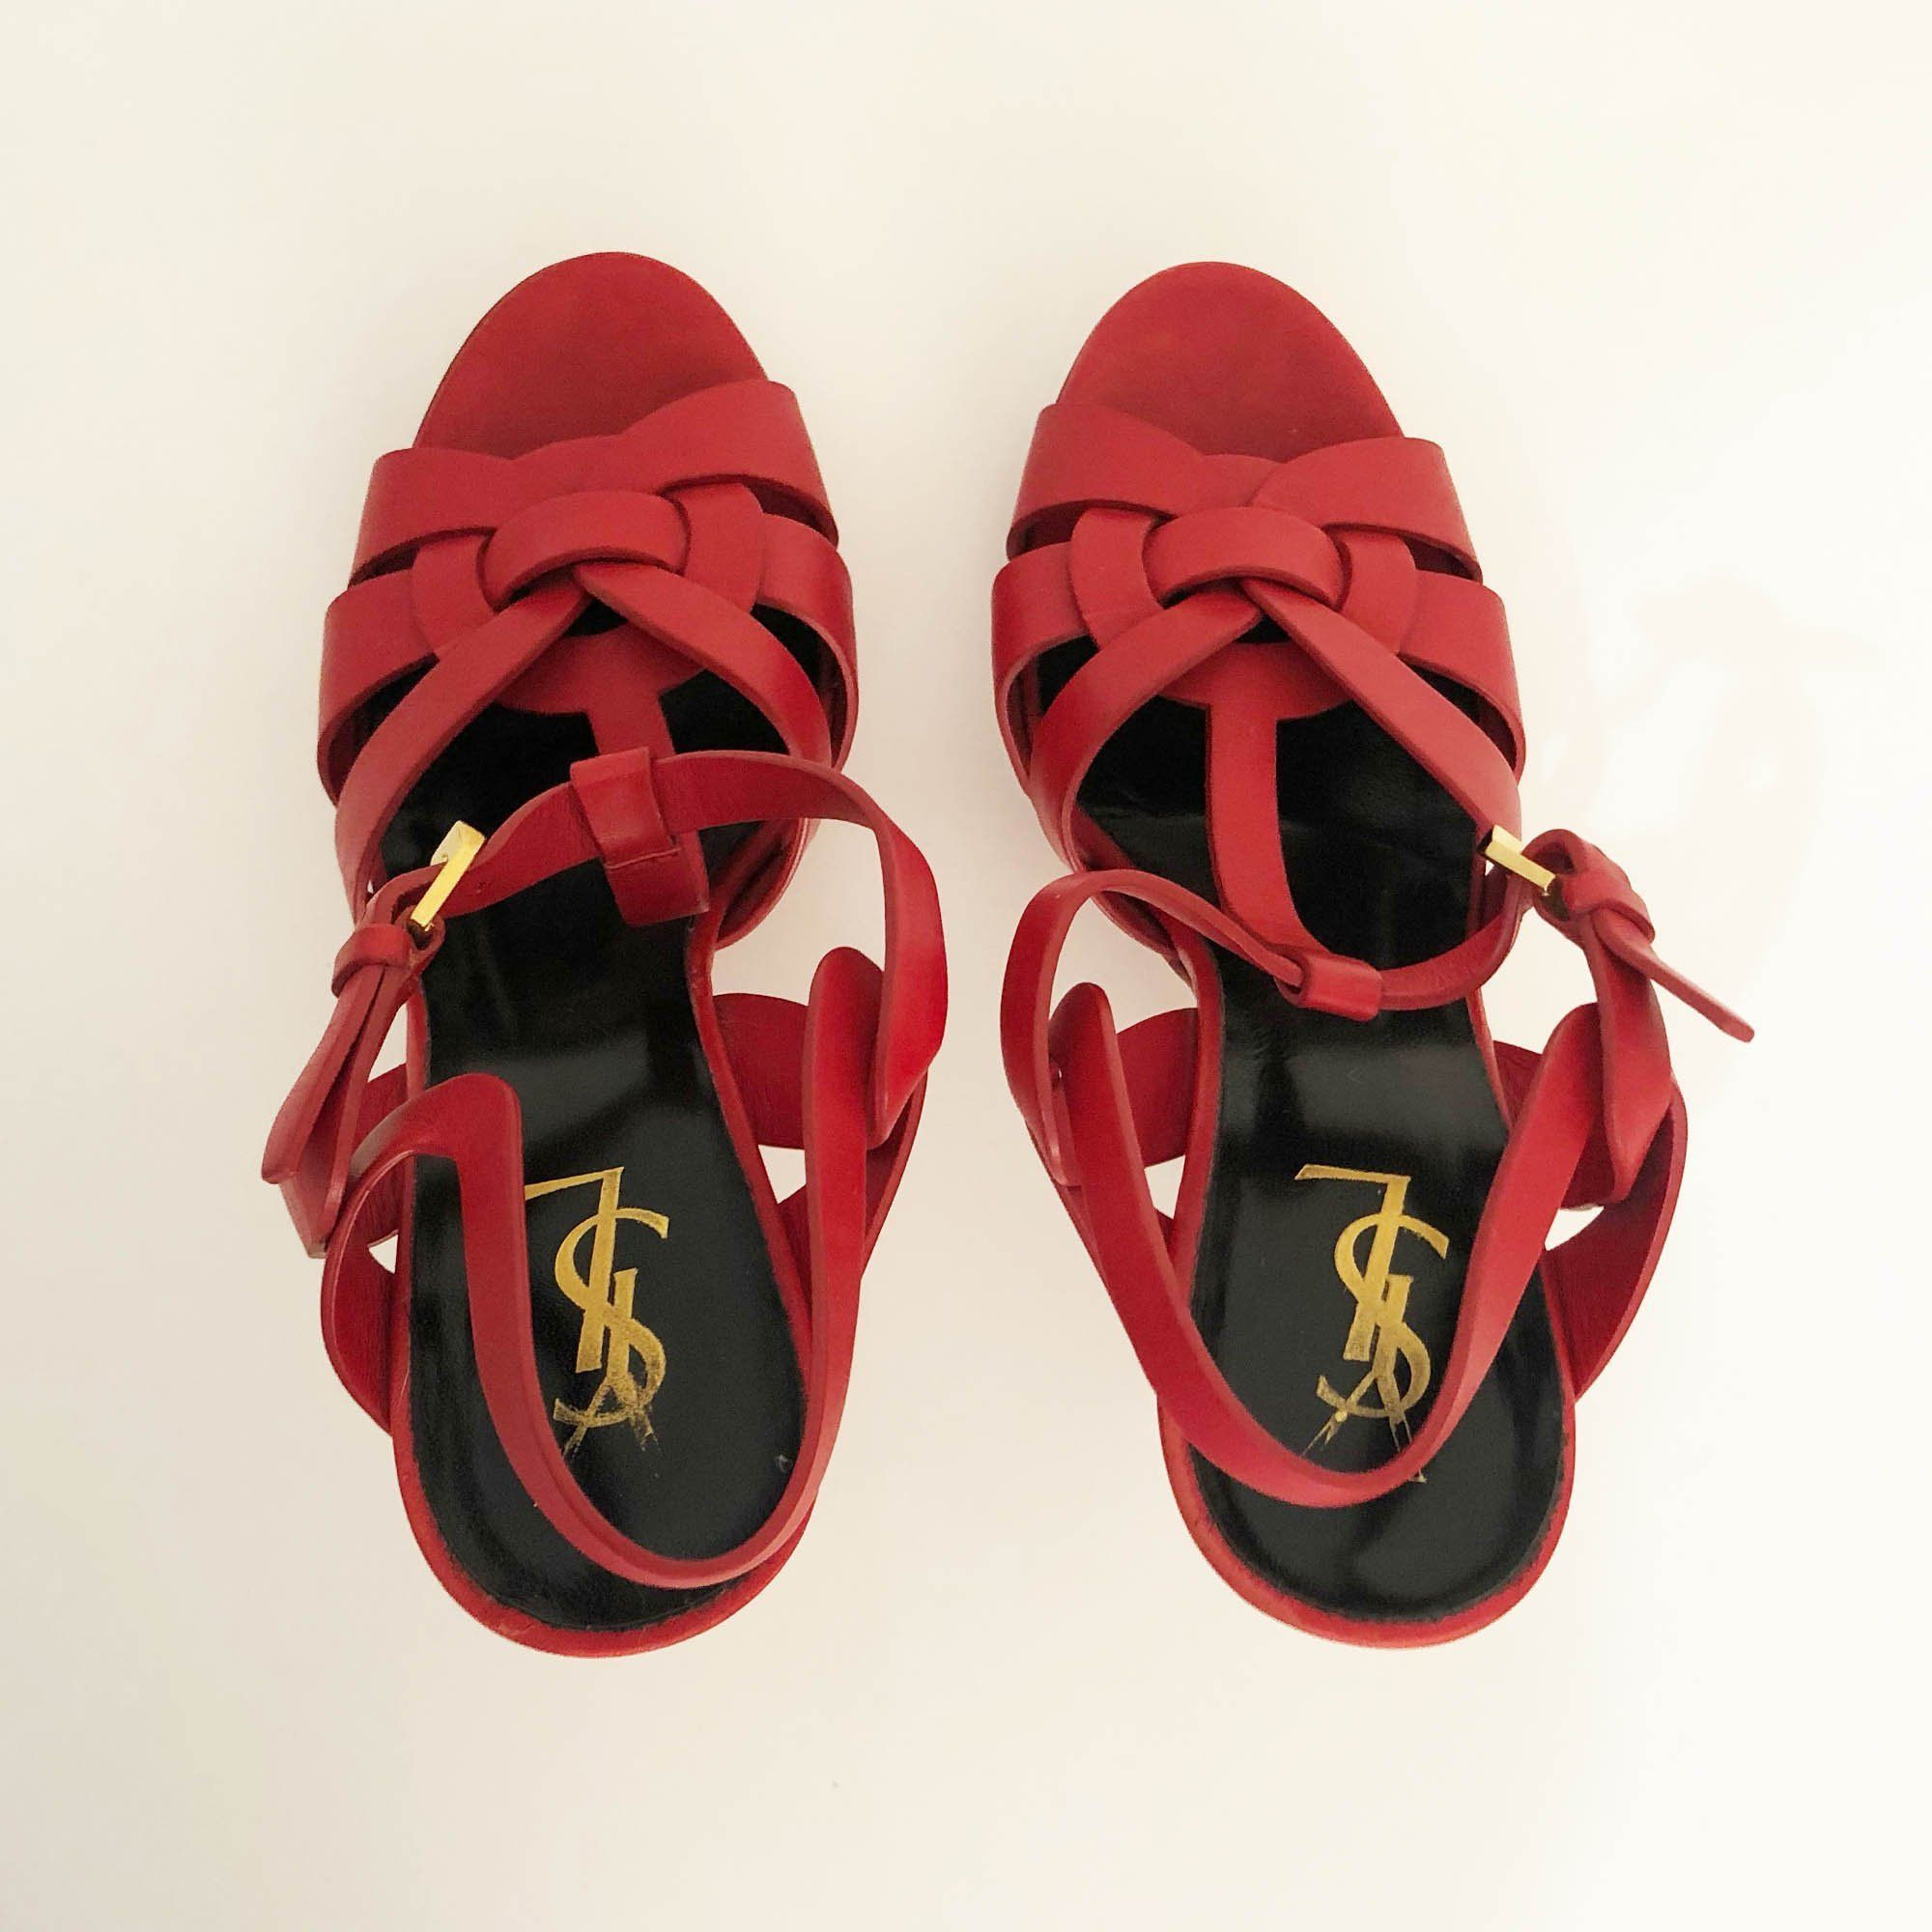 Saint Laurent Tribute Red Sandal Heels